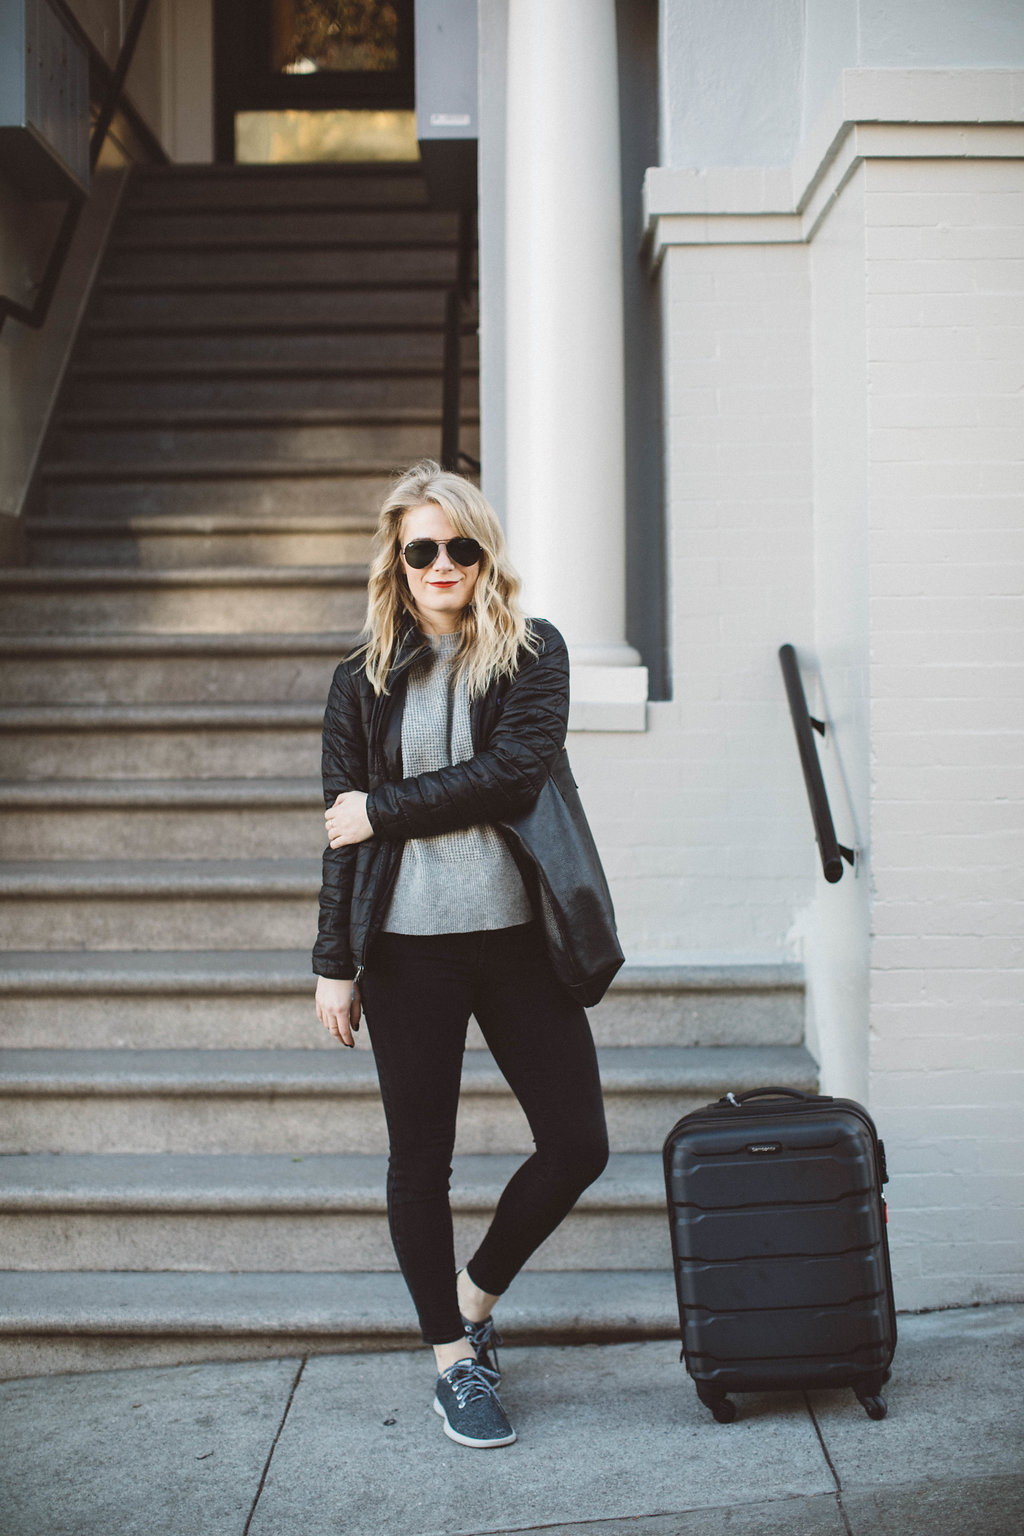 My Go To Travel Outfit.